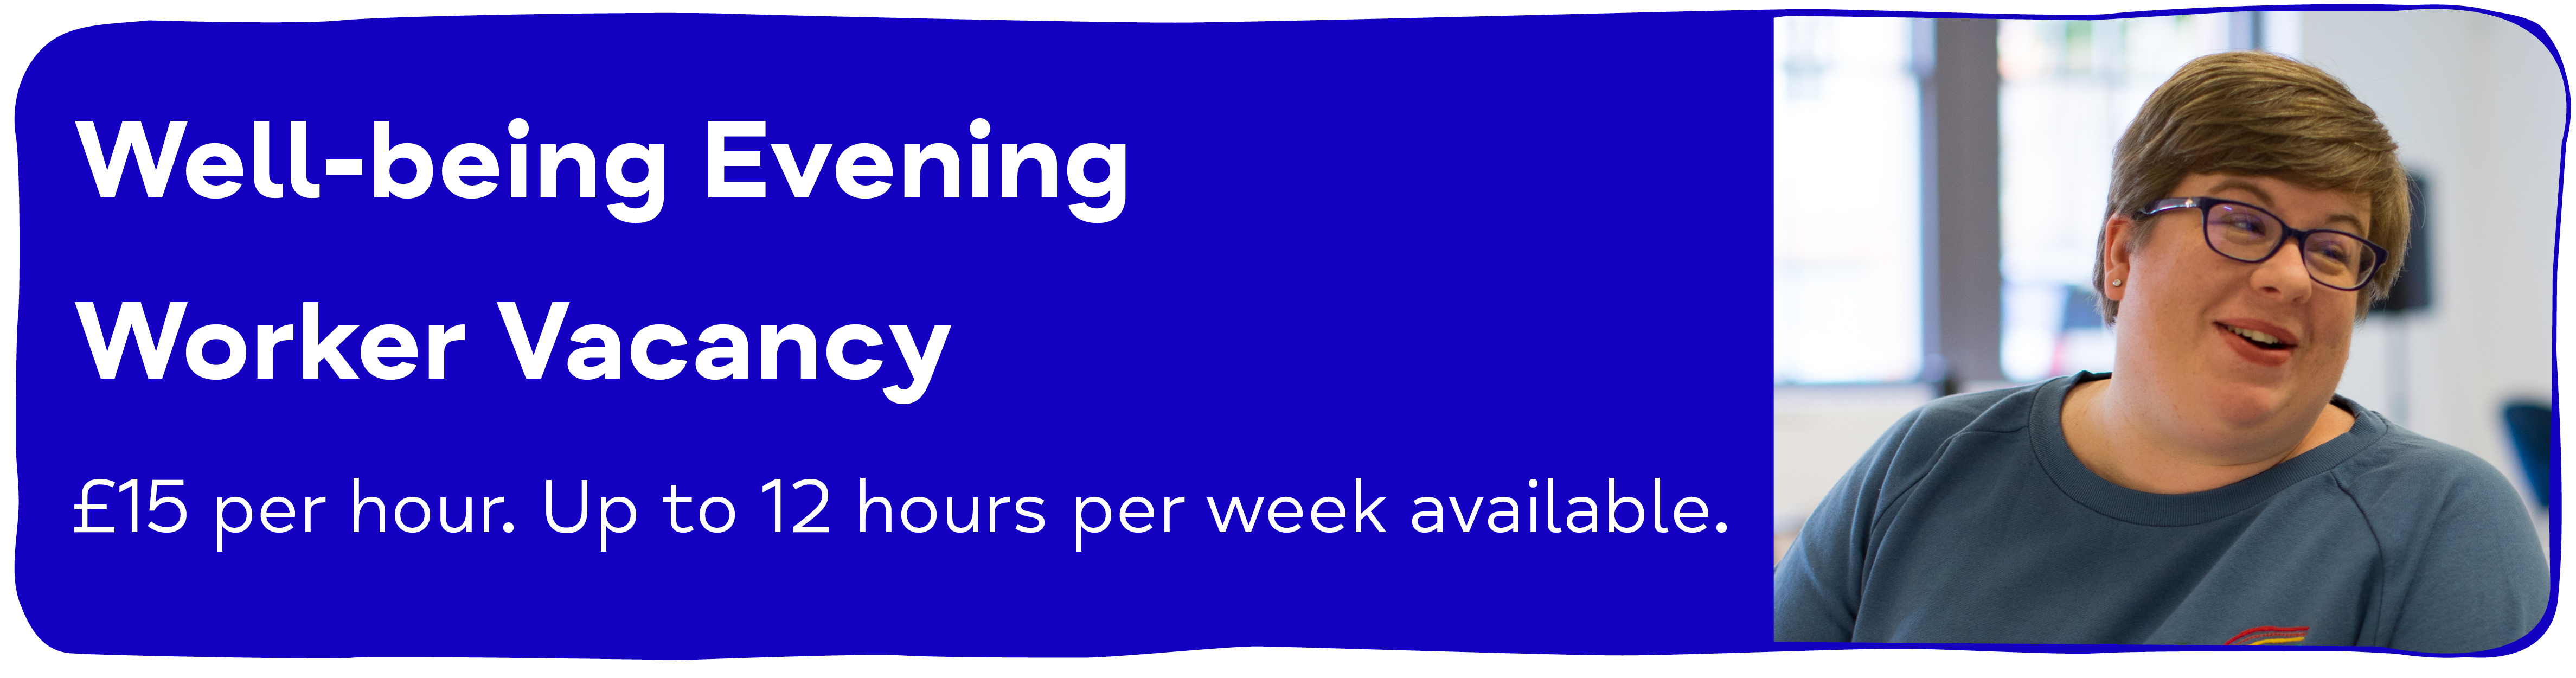 Well-being Evening Worker Vacancy £15 per hour. Up to 12 hours per week available.